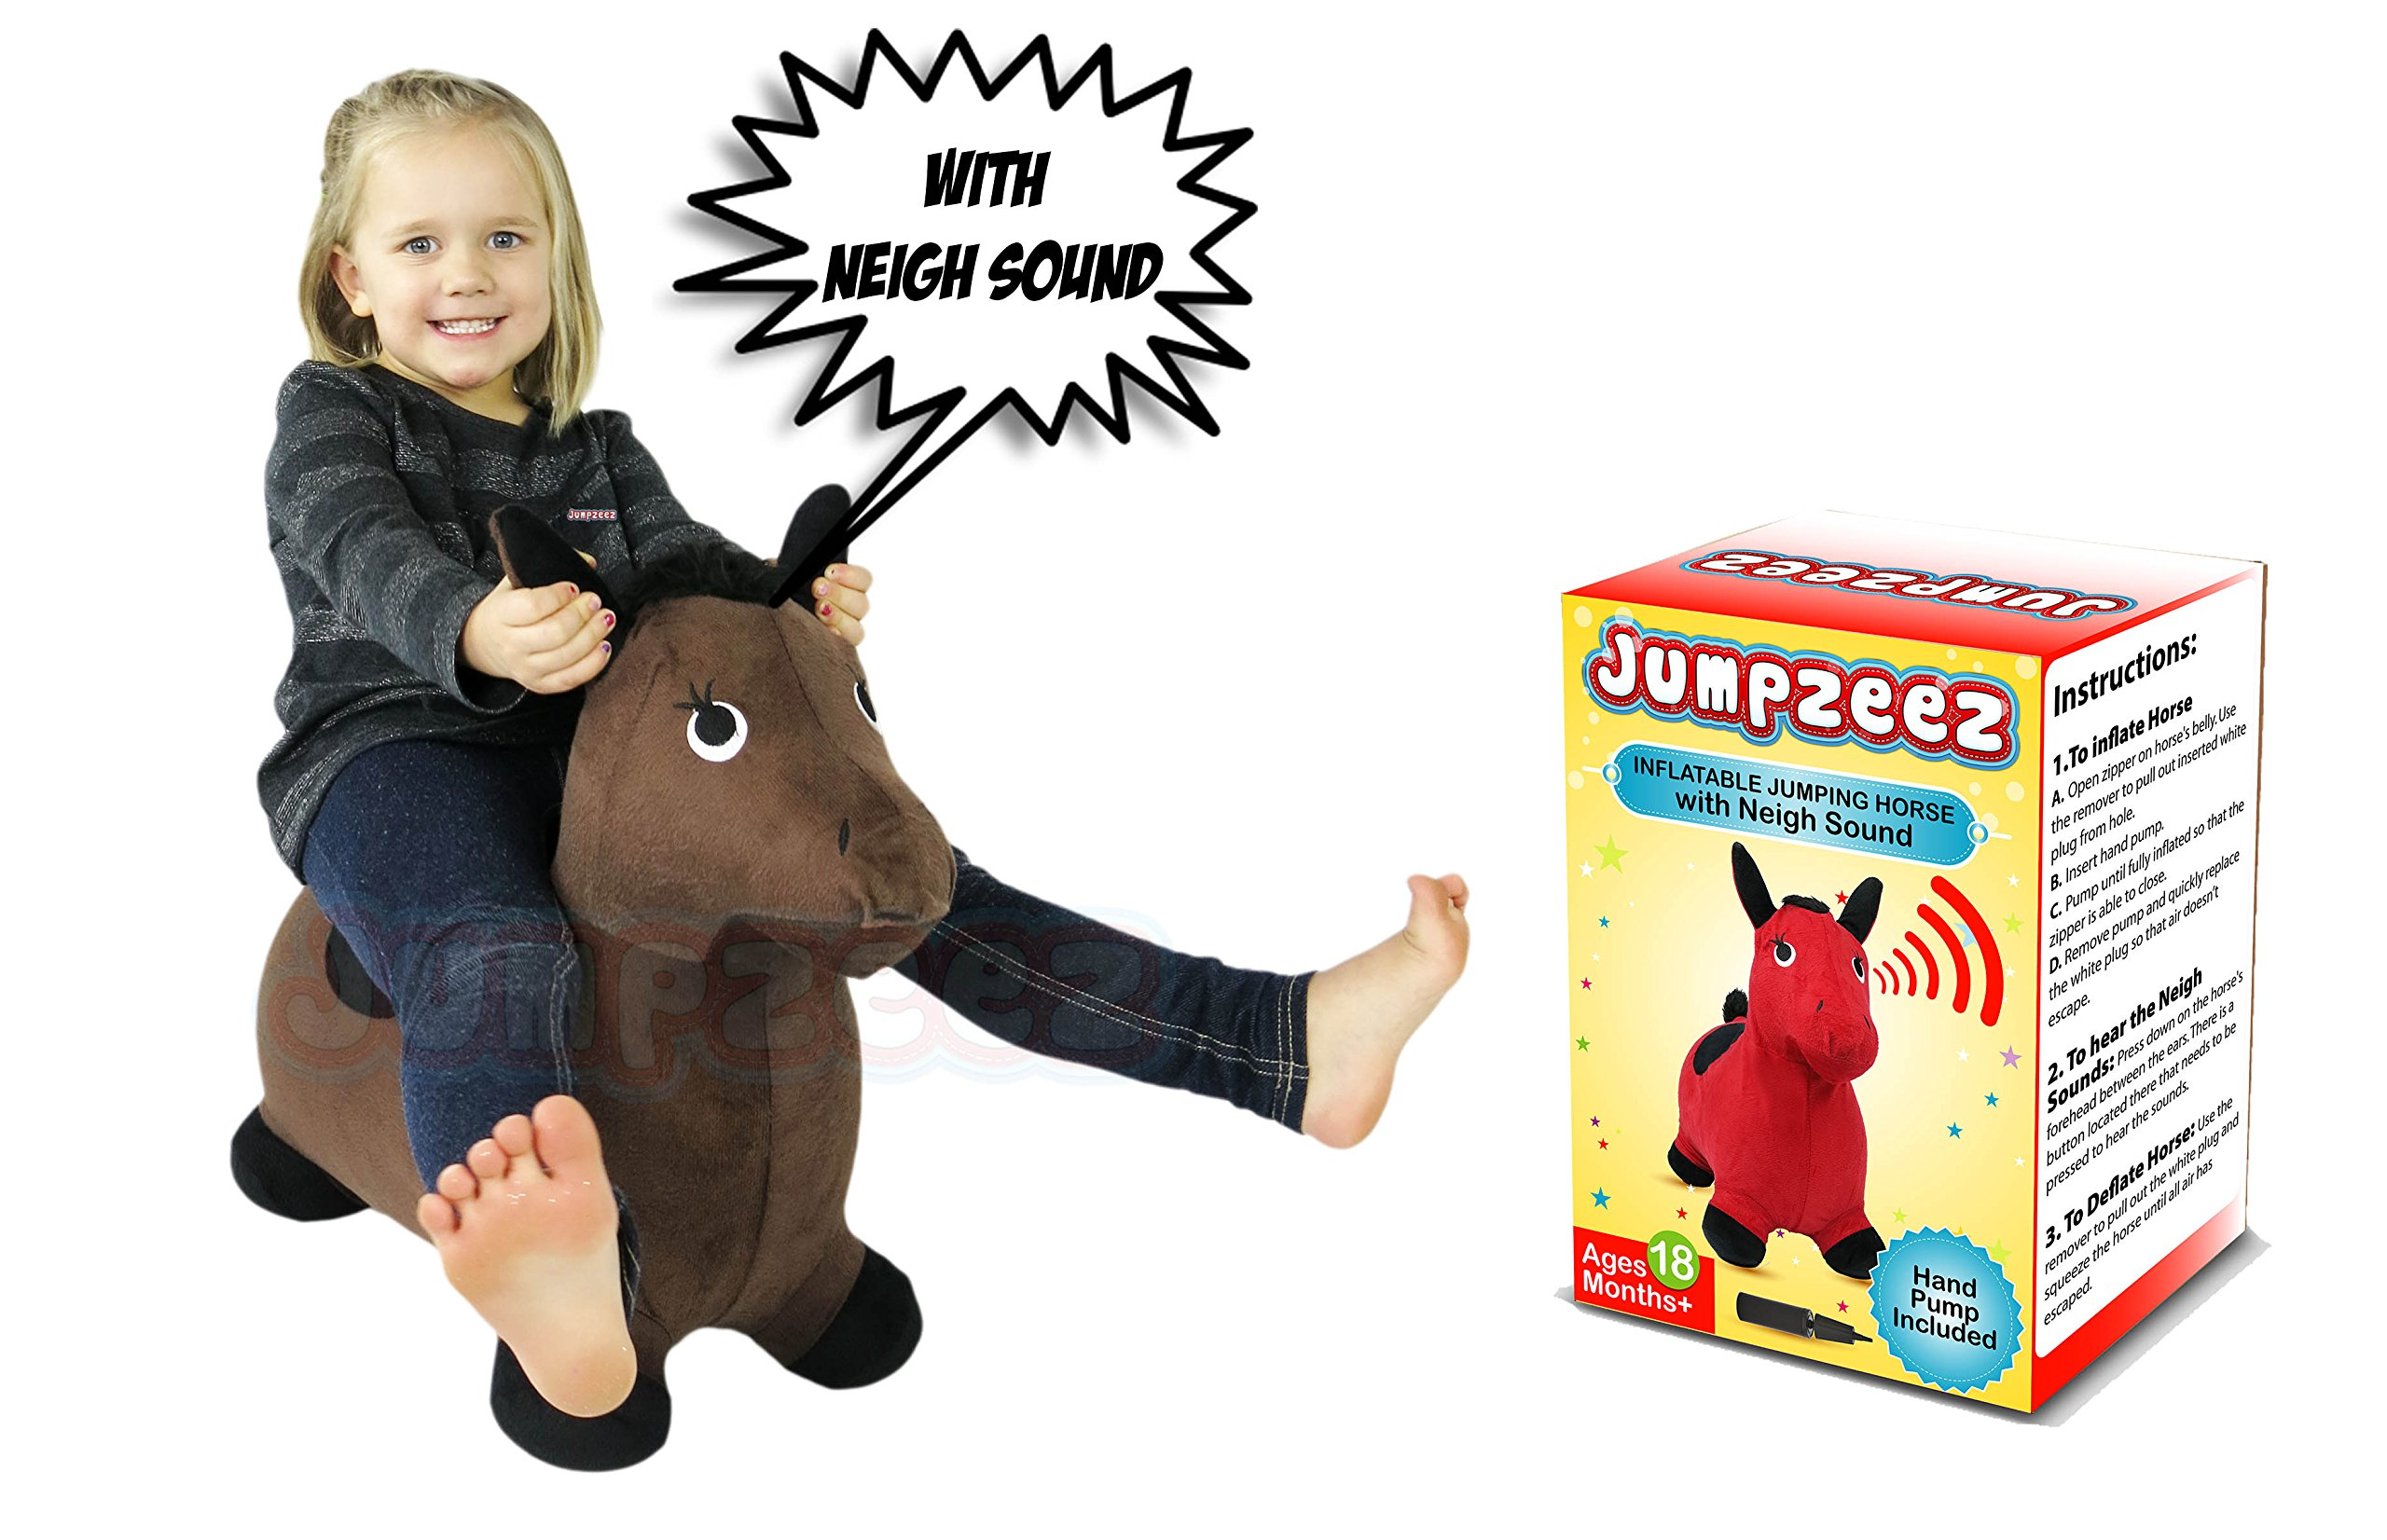 Riding Horse for Kids Inflatable Jumping Horse with Real Neigh Sounds — Hopping Horse Ride-On Toy for Toddlers — Strong Durable, Washable Fabric — 3 Unique Fun Colors — BONUS Free Pump & Plug Remover